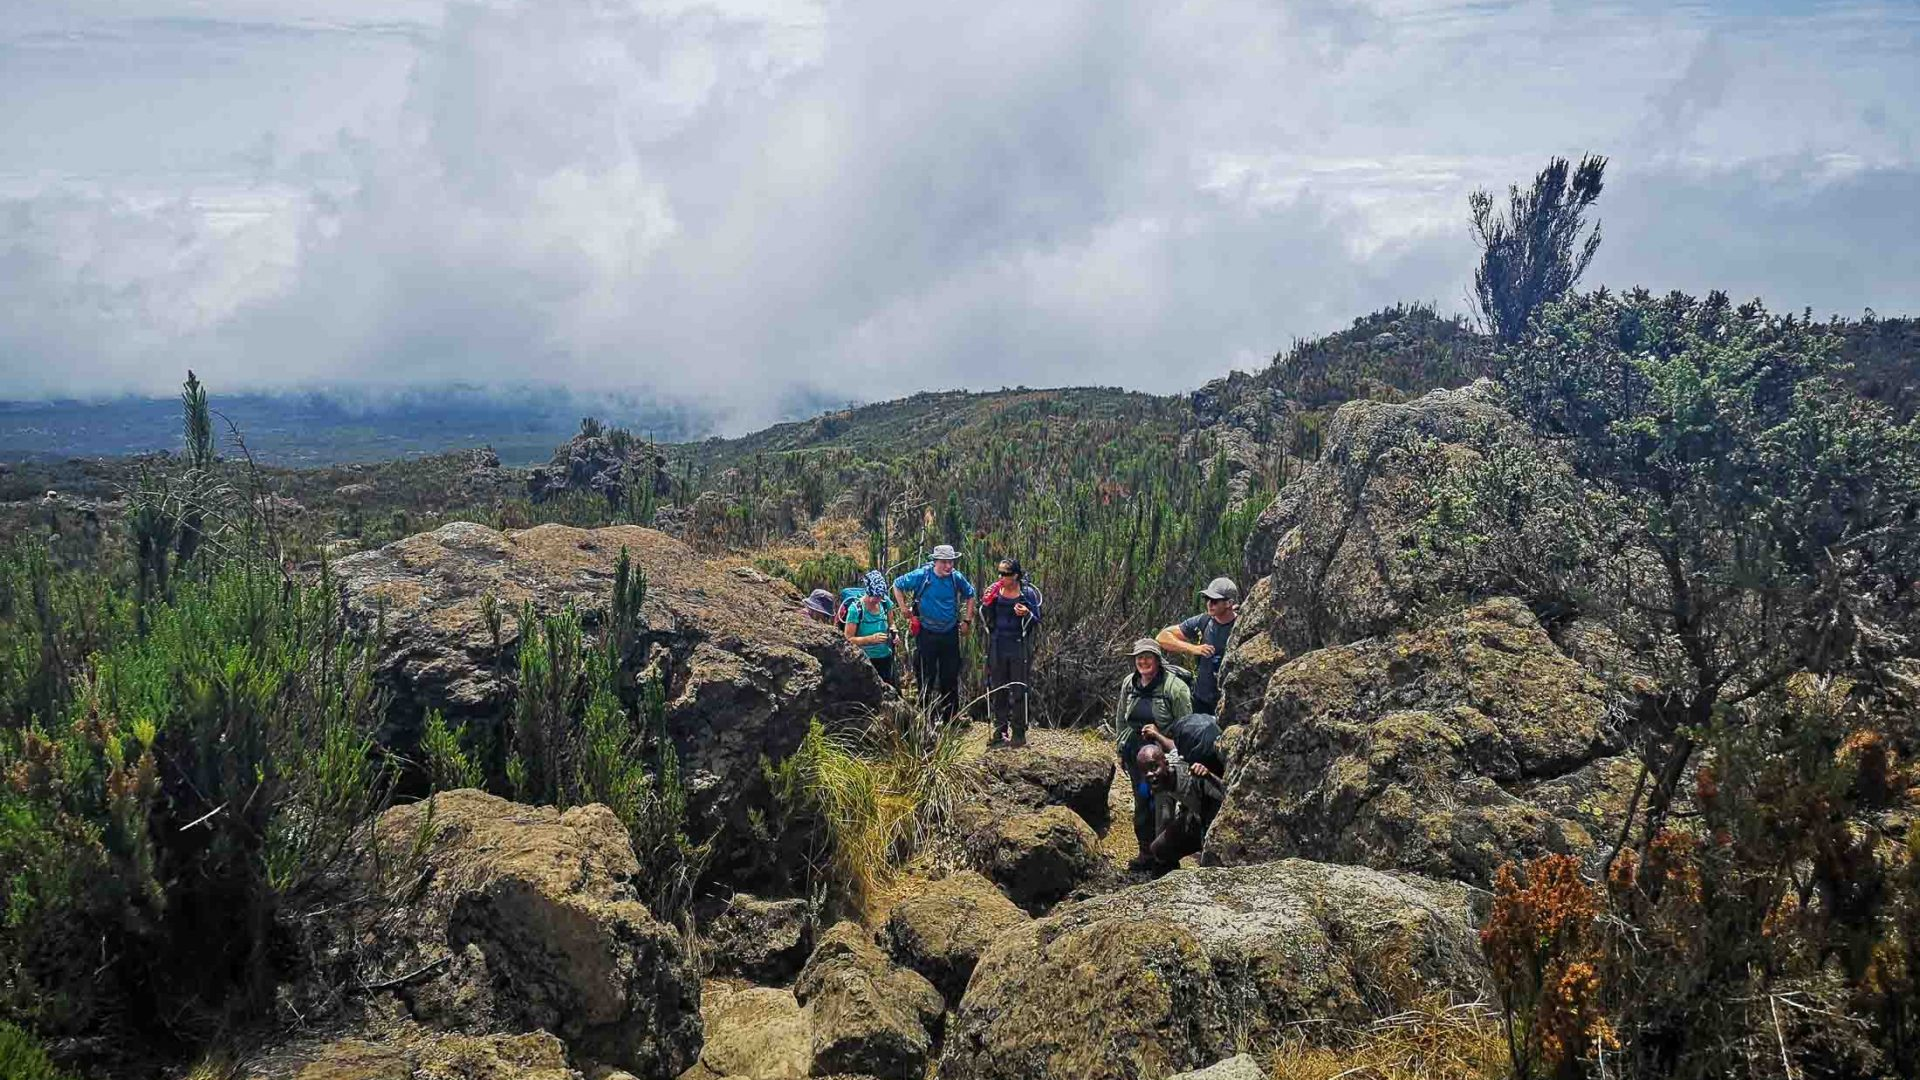 Hikers clamber through rocks along the Rongai Route to Kilimanjaro.